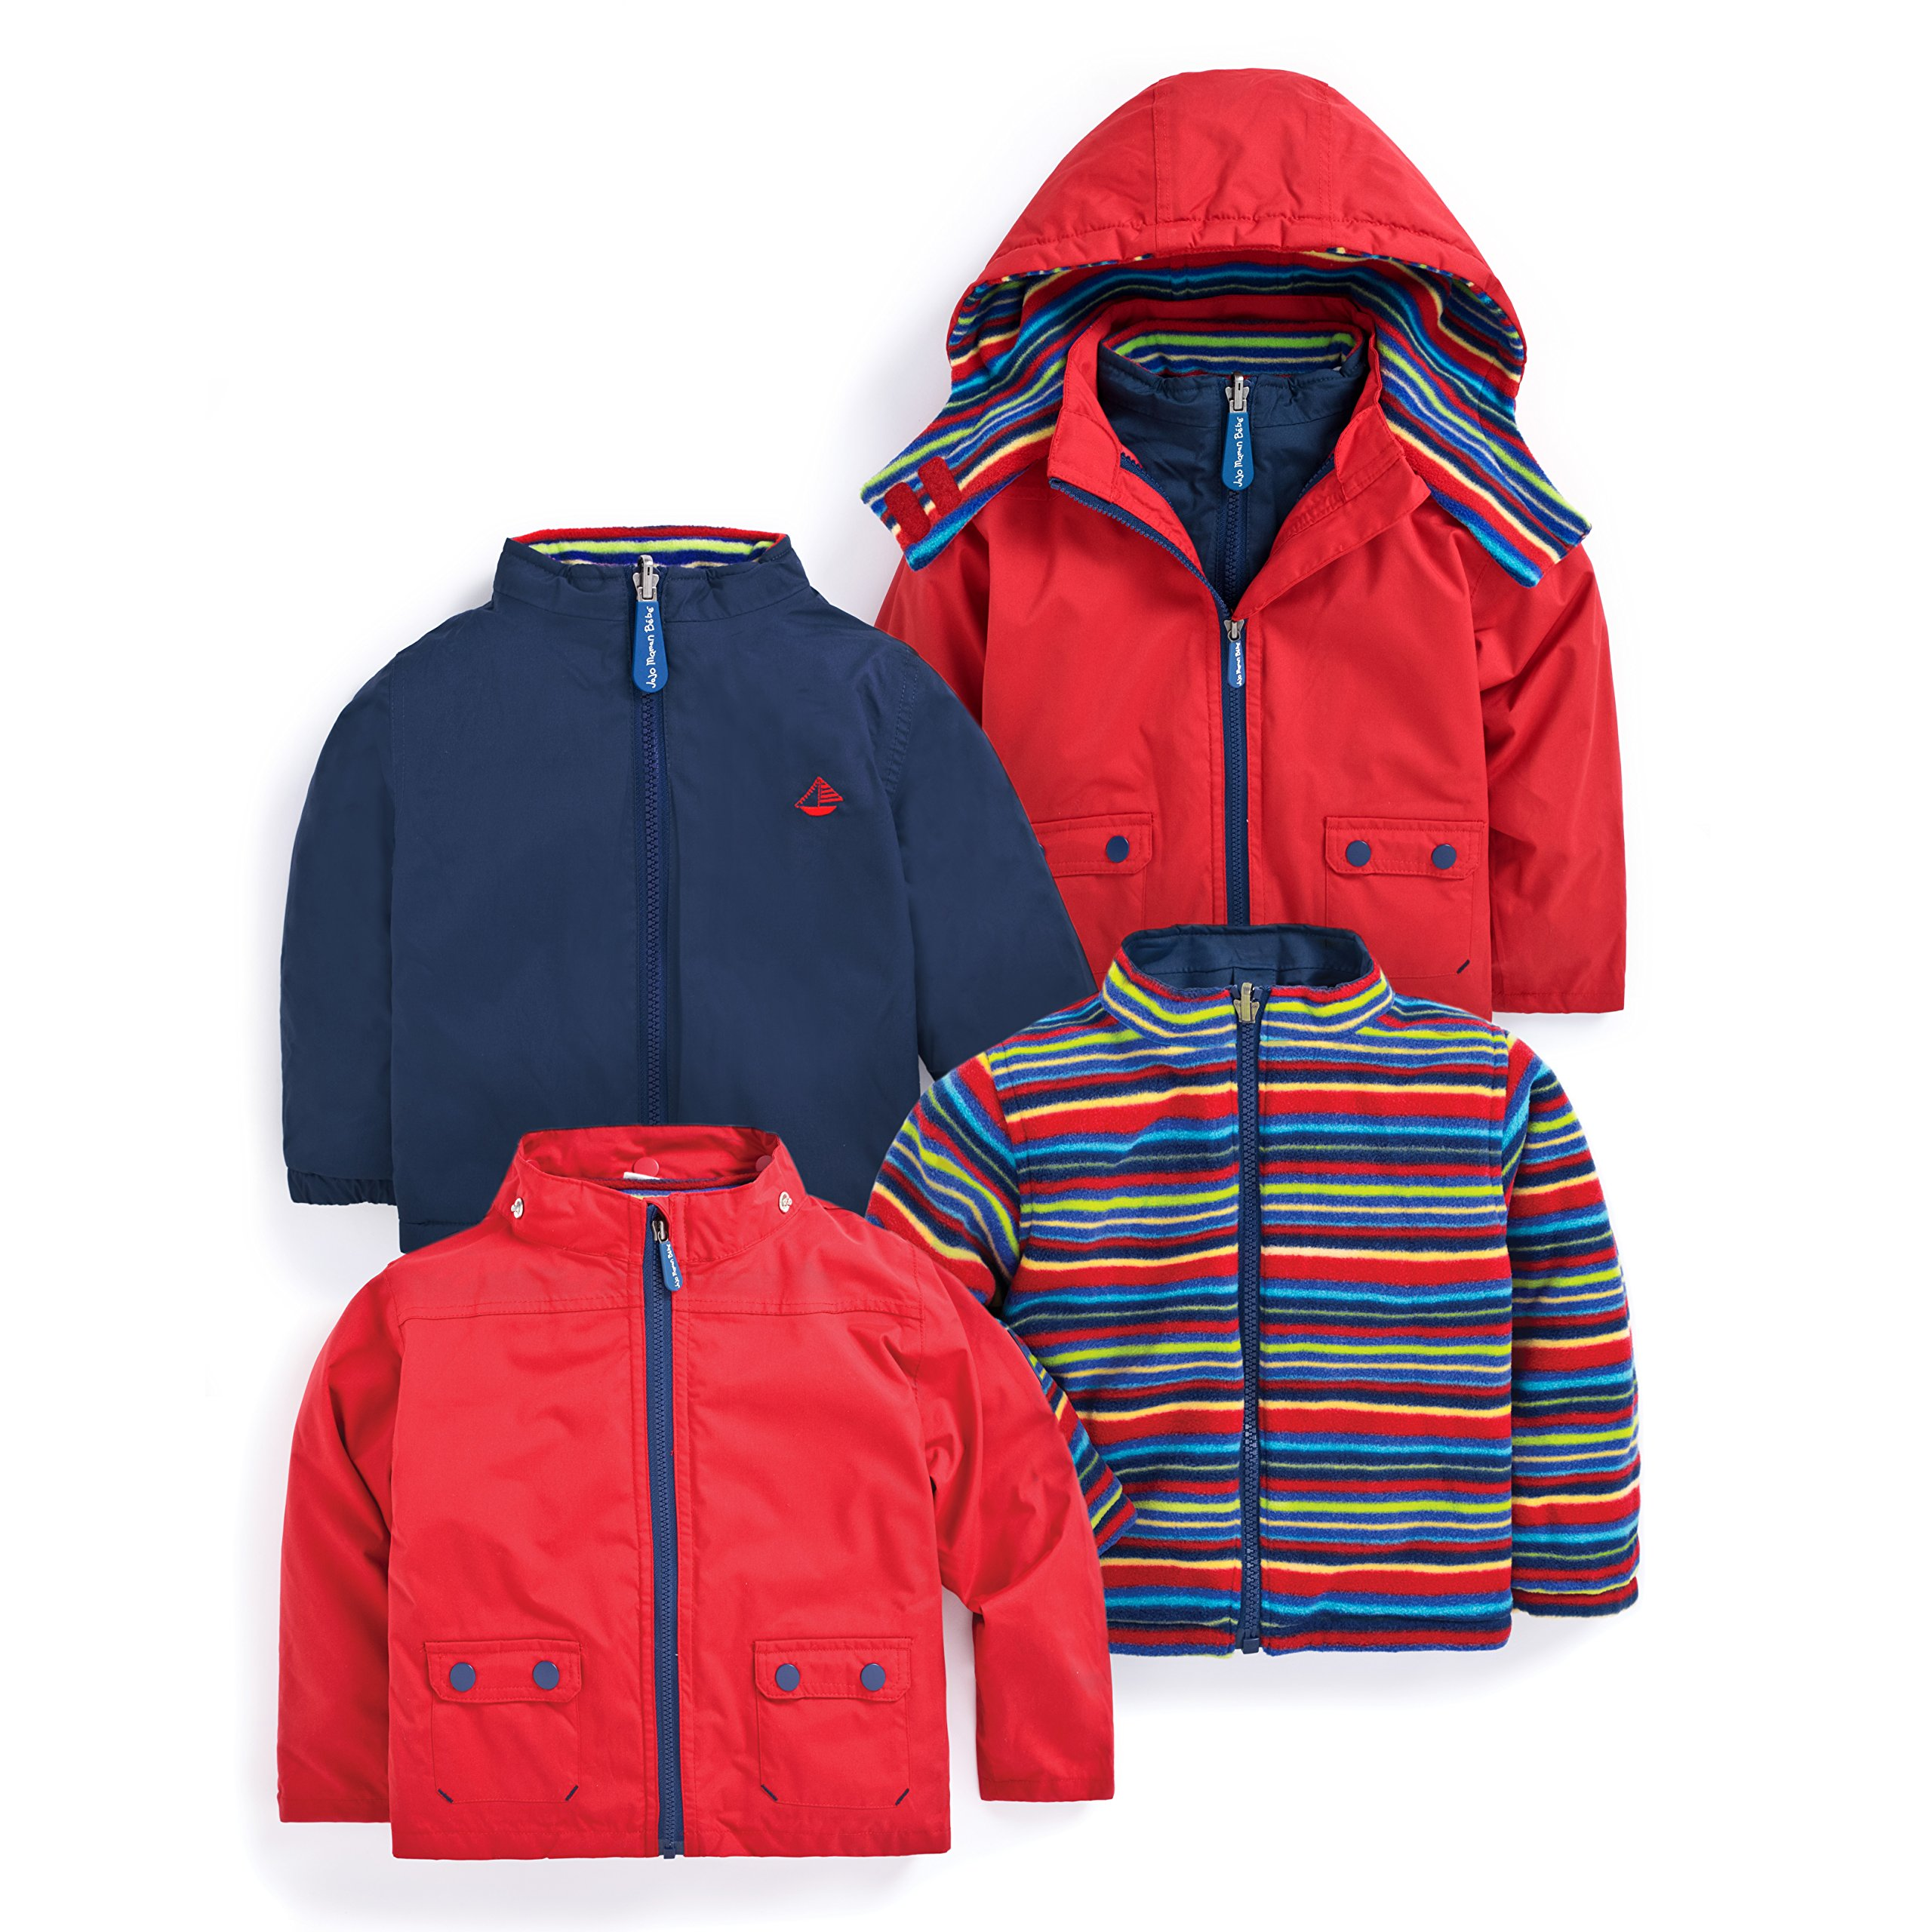 4-In-1 Waterproof Polarfleece Jacket by JOJO MAMAN BÉBÉ